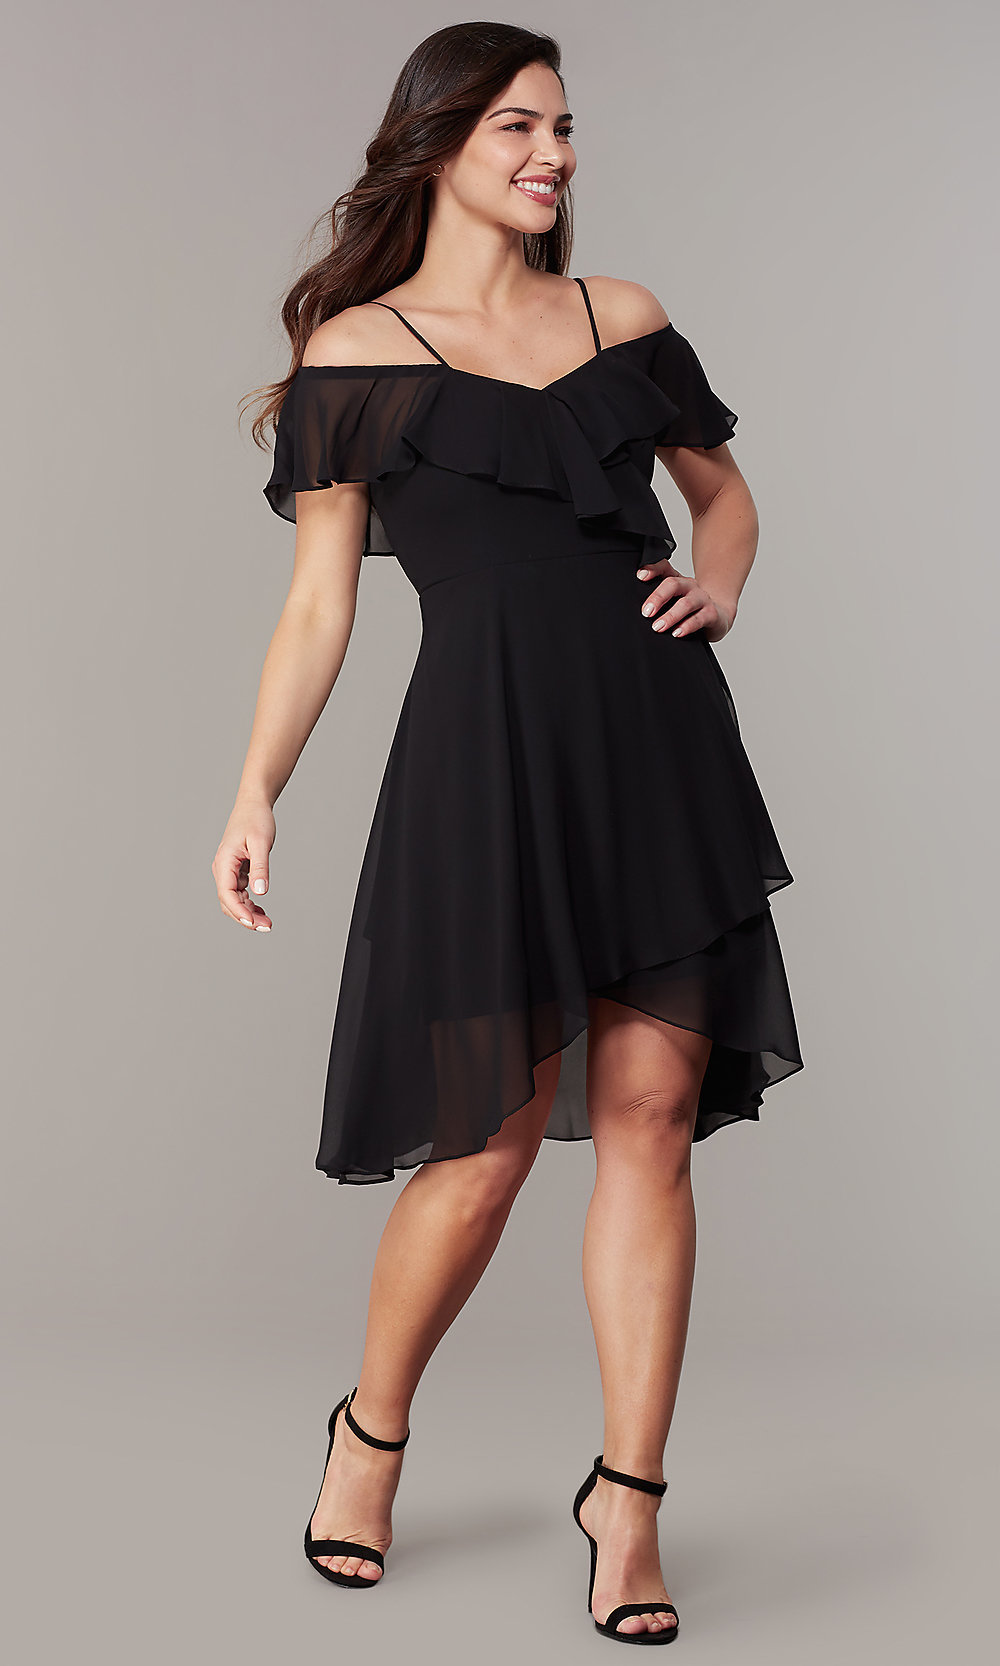 Off The Shoulder High Low Black Wedding Guest Dress,Cocktail Dresses For 60 Year Old Wedding Guest